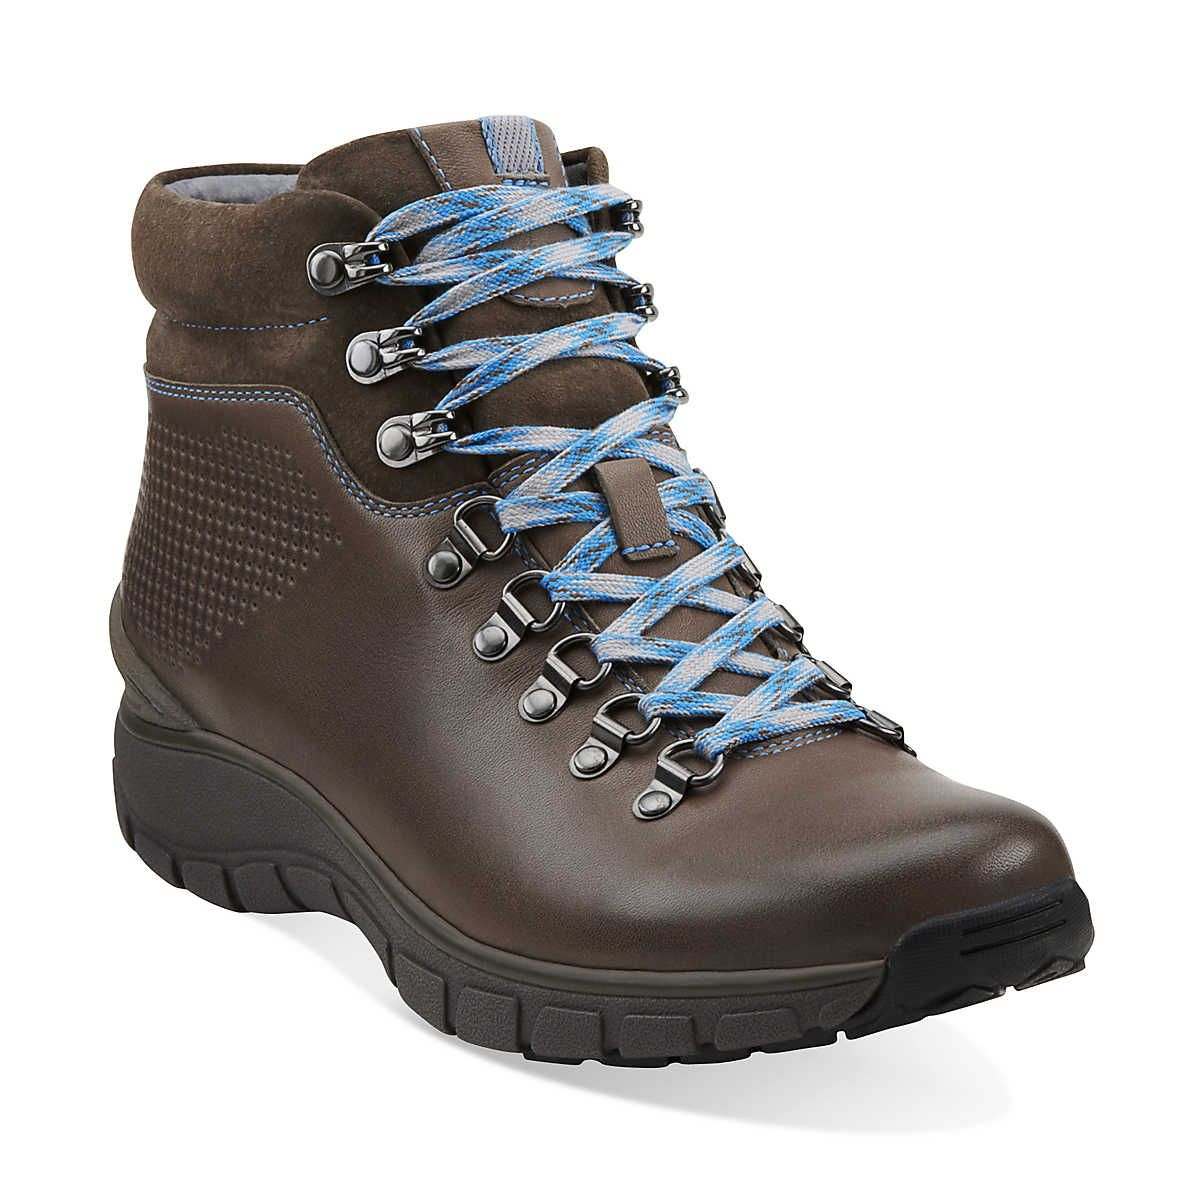 e426a8a252a Wave.Cliff in Grey Leather - Womens Boots from Clarks #waterproof ...